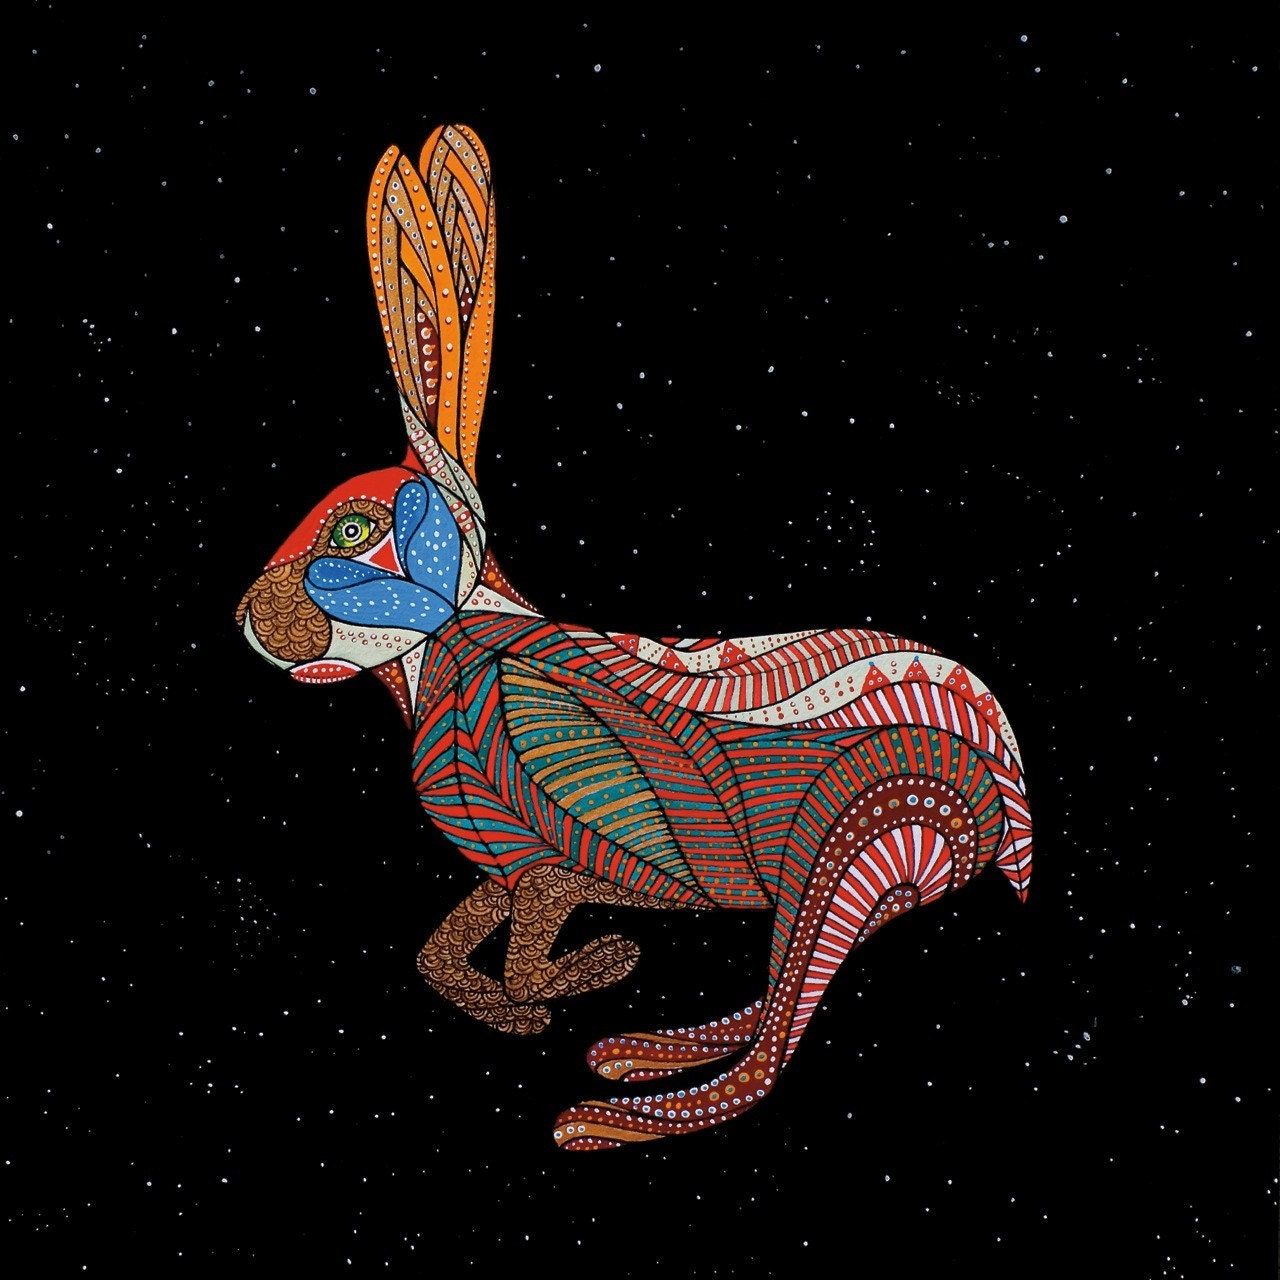 Zodiac rabbit art chinese zodiac animals by thailan by thailan